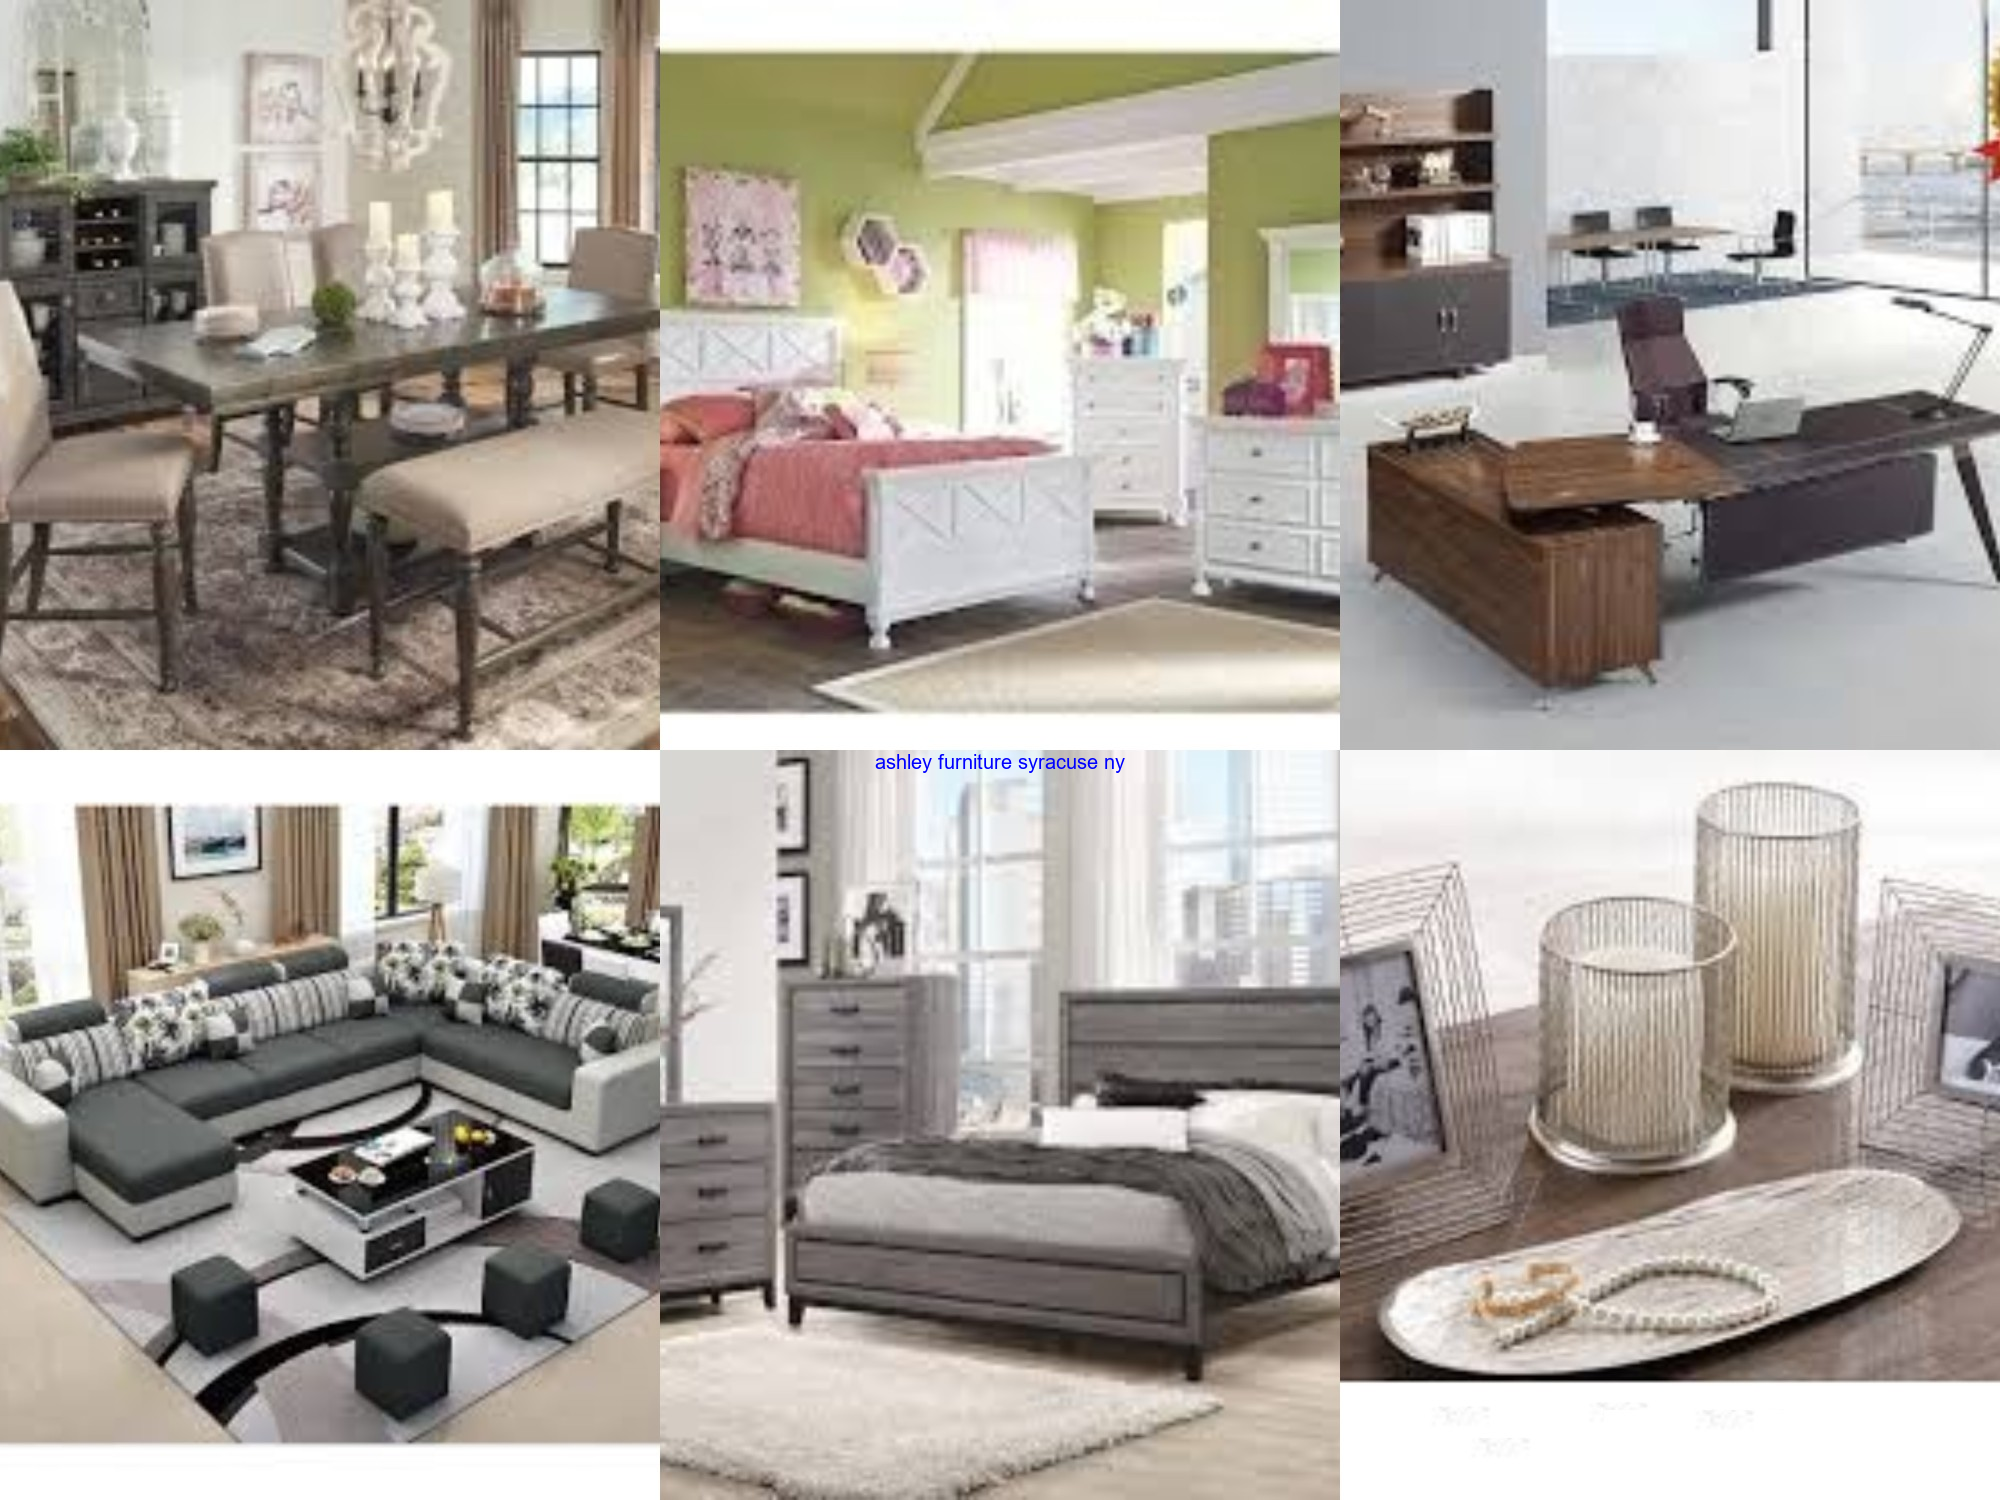 Ashley Furniture Syracuse Ny I Recommend One To Try This Website